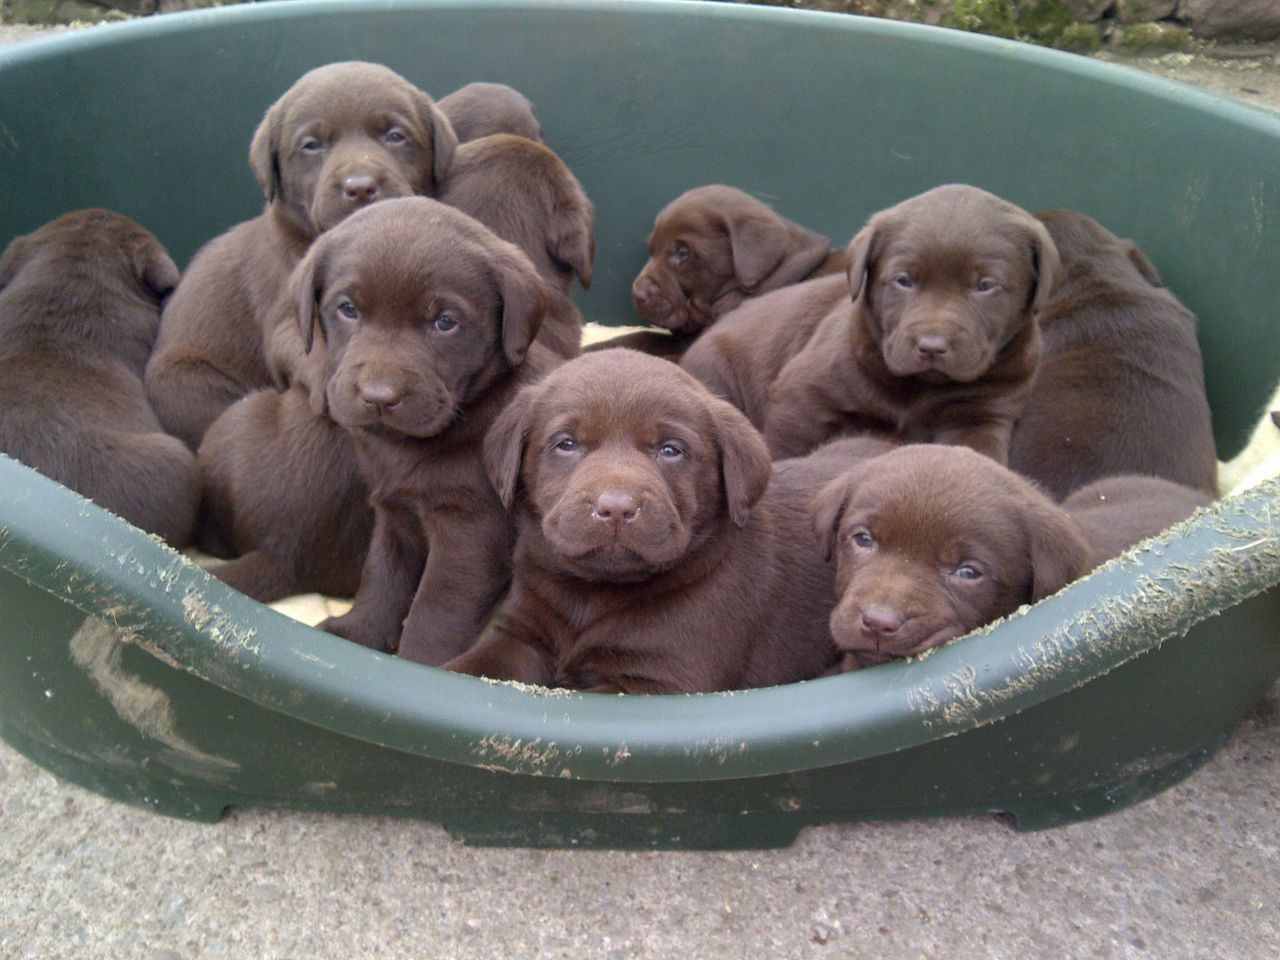 years ago For Sale Dogs Labrador Retriever Macclesfield 1280x960